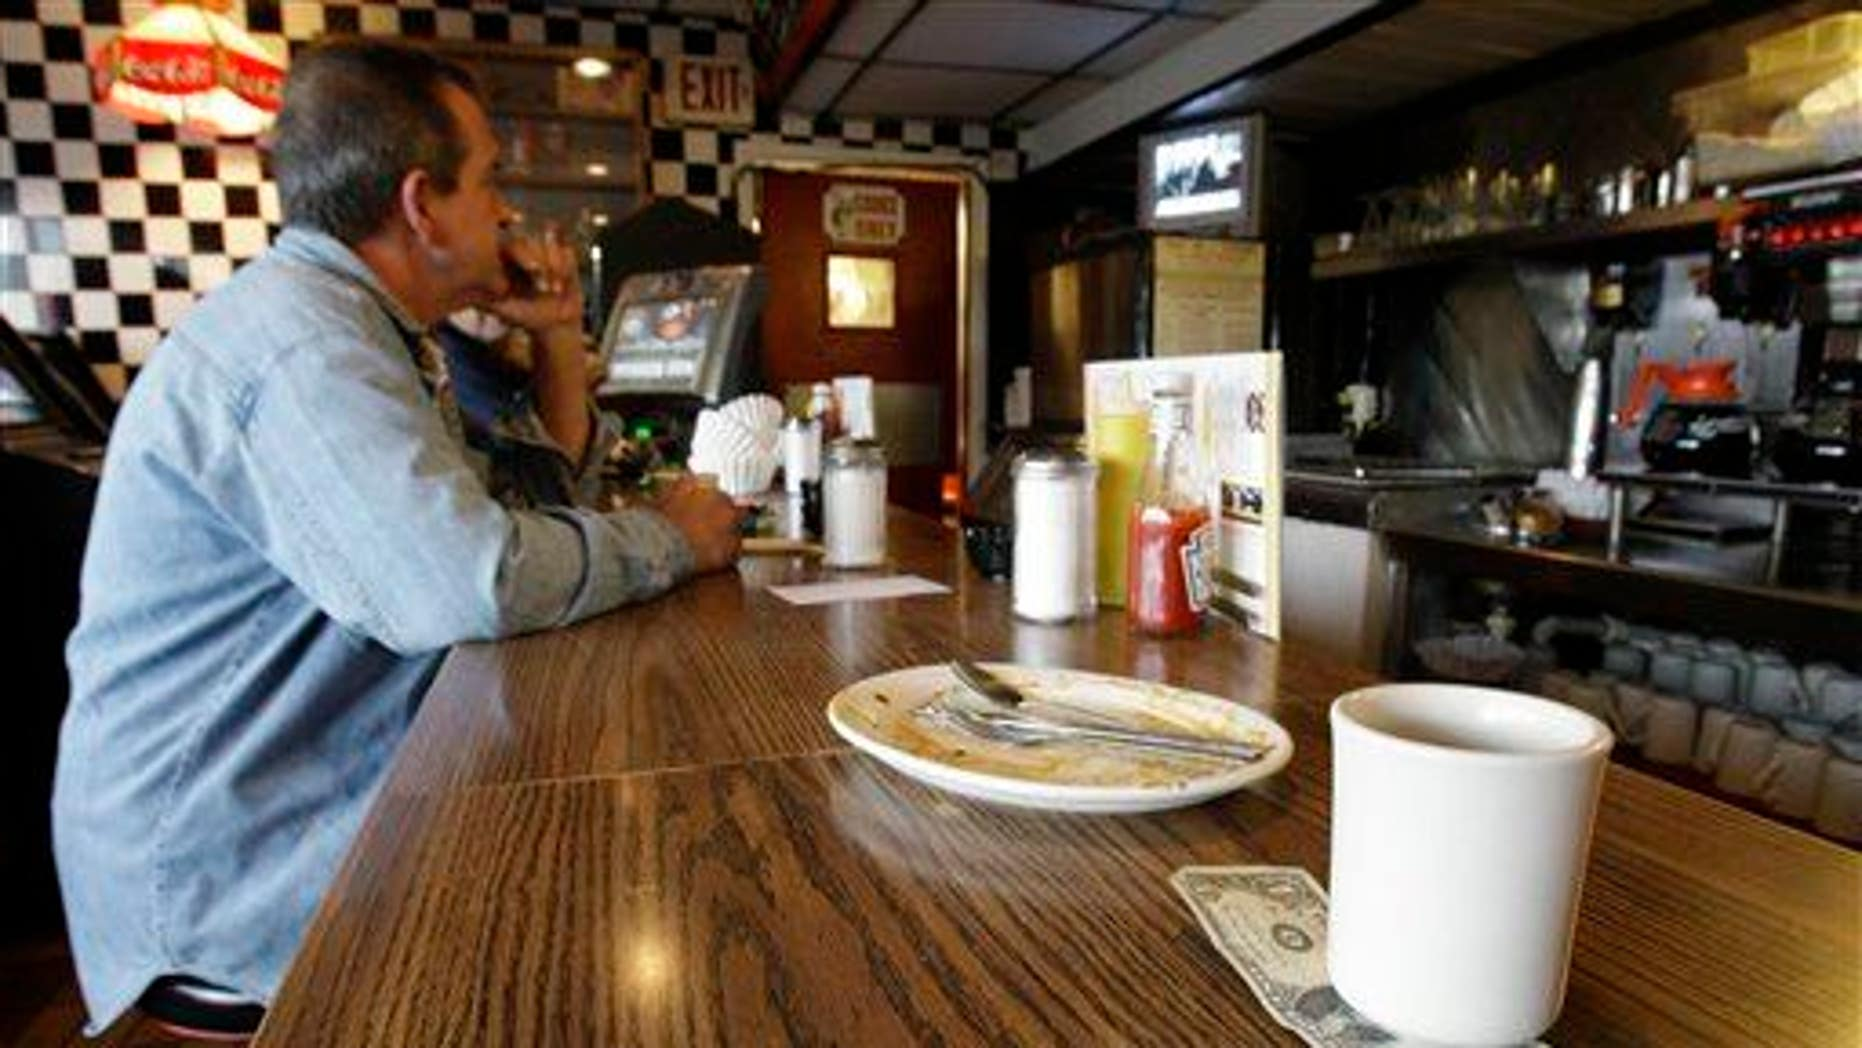 In this June 19, 2008 file photo, a tip is left by a customer at a restaurant in St. Clair Shores, Mich.